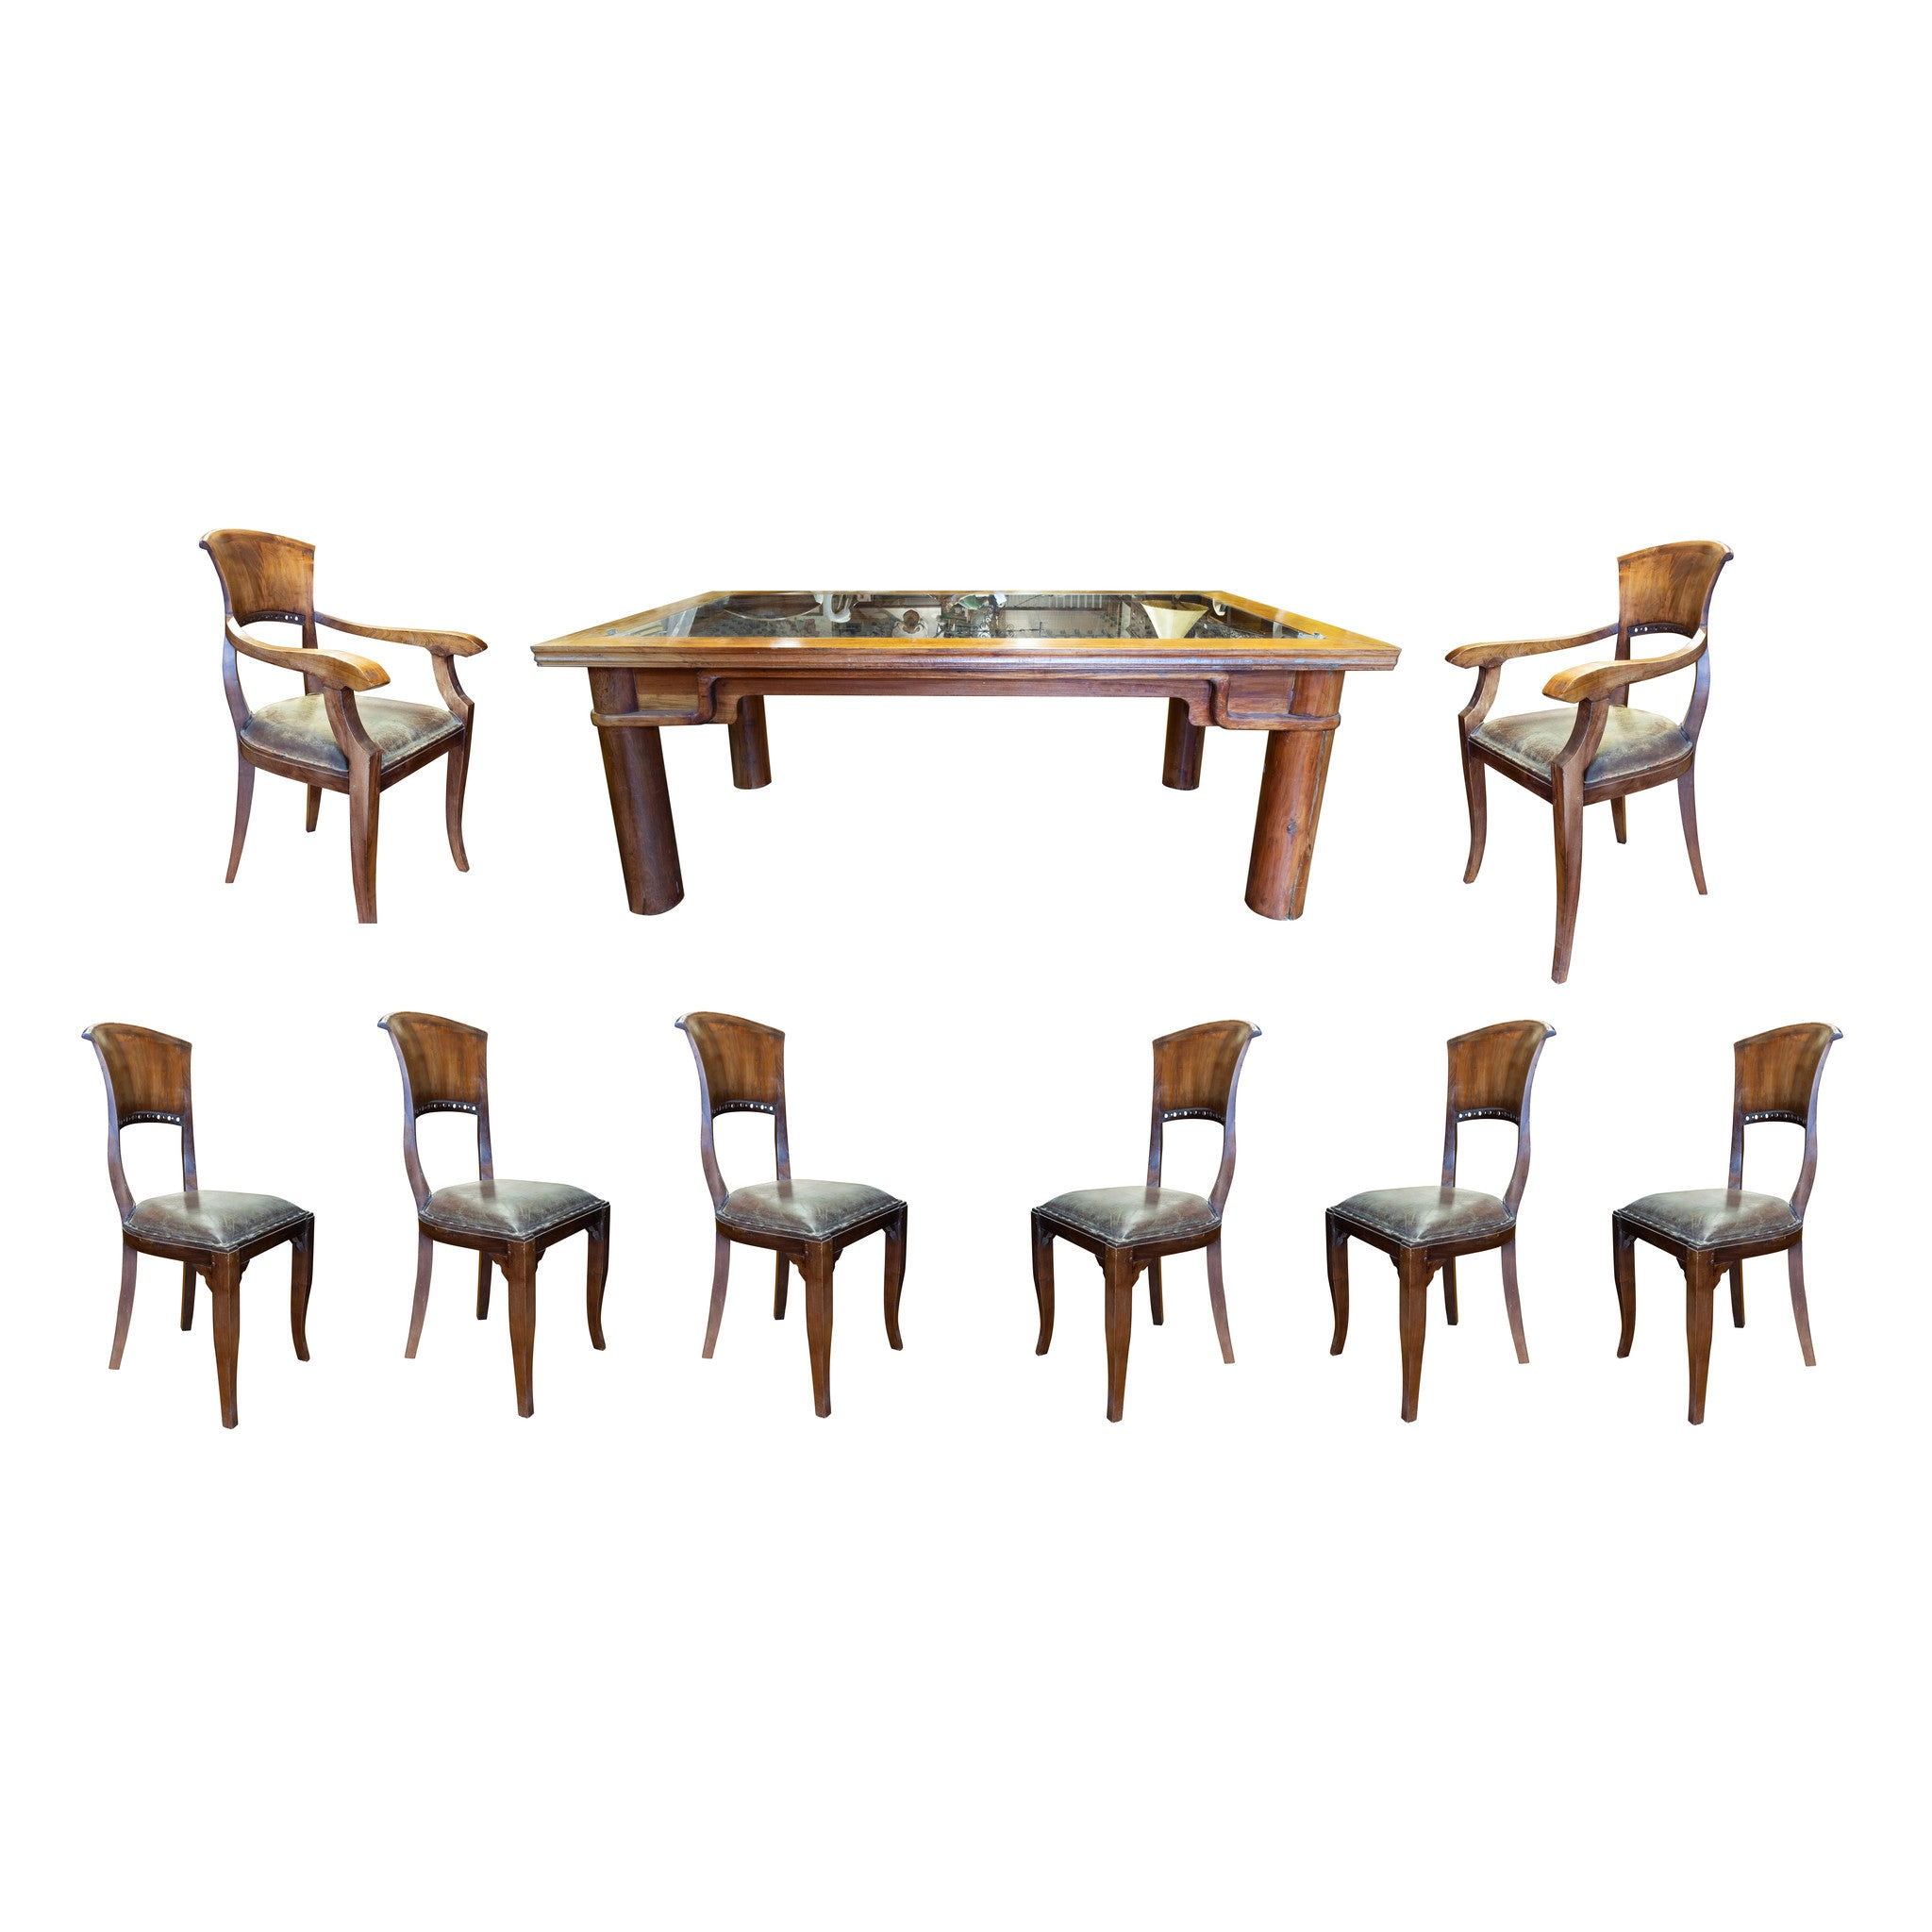 Teak Door Table and Chairs chairs, dining sets, leather, lodge furnishings: furniture: dinning table, sale item, seating, tables, teak